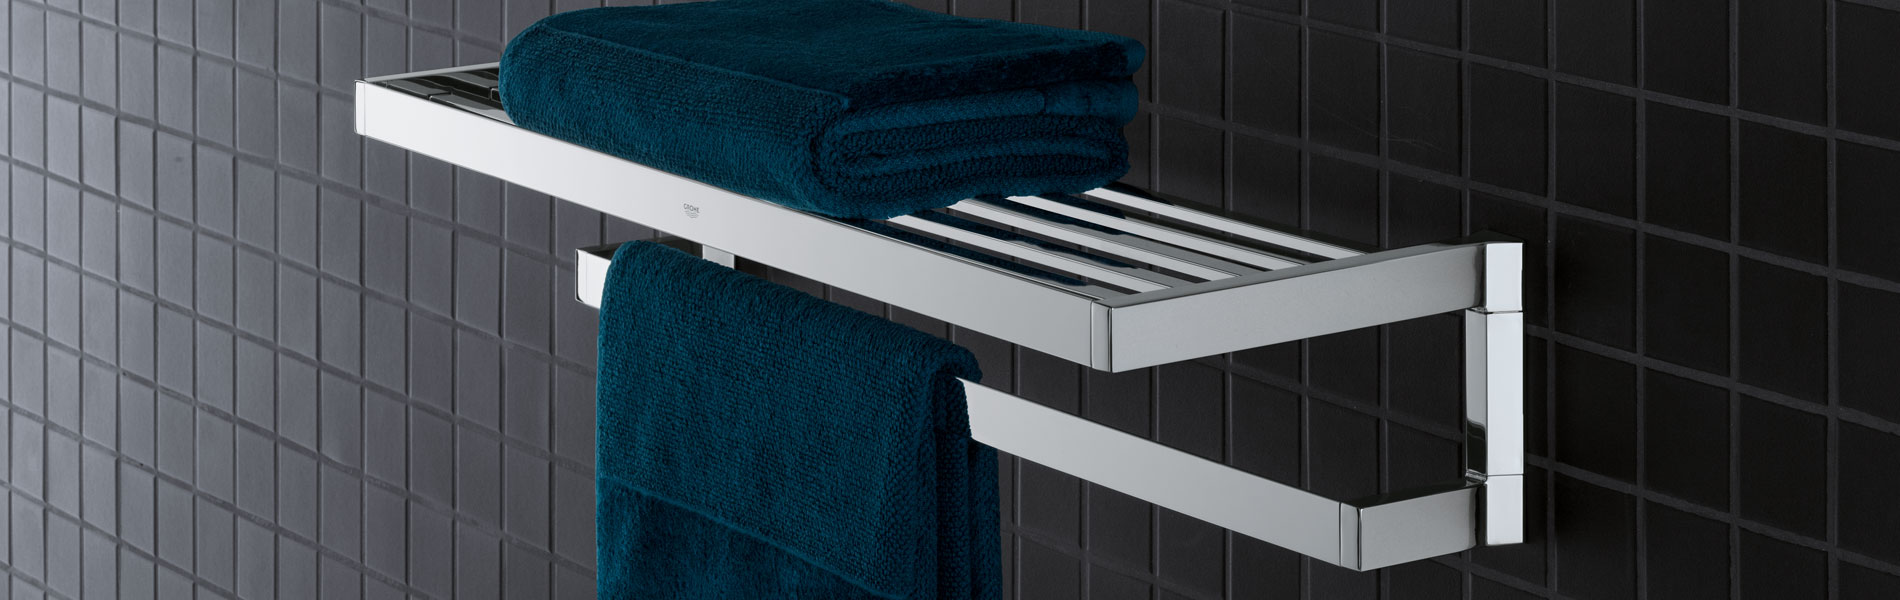 Selection cube towel rack on a black tiled wall.